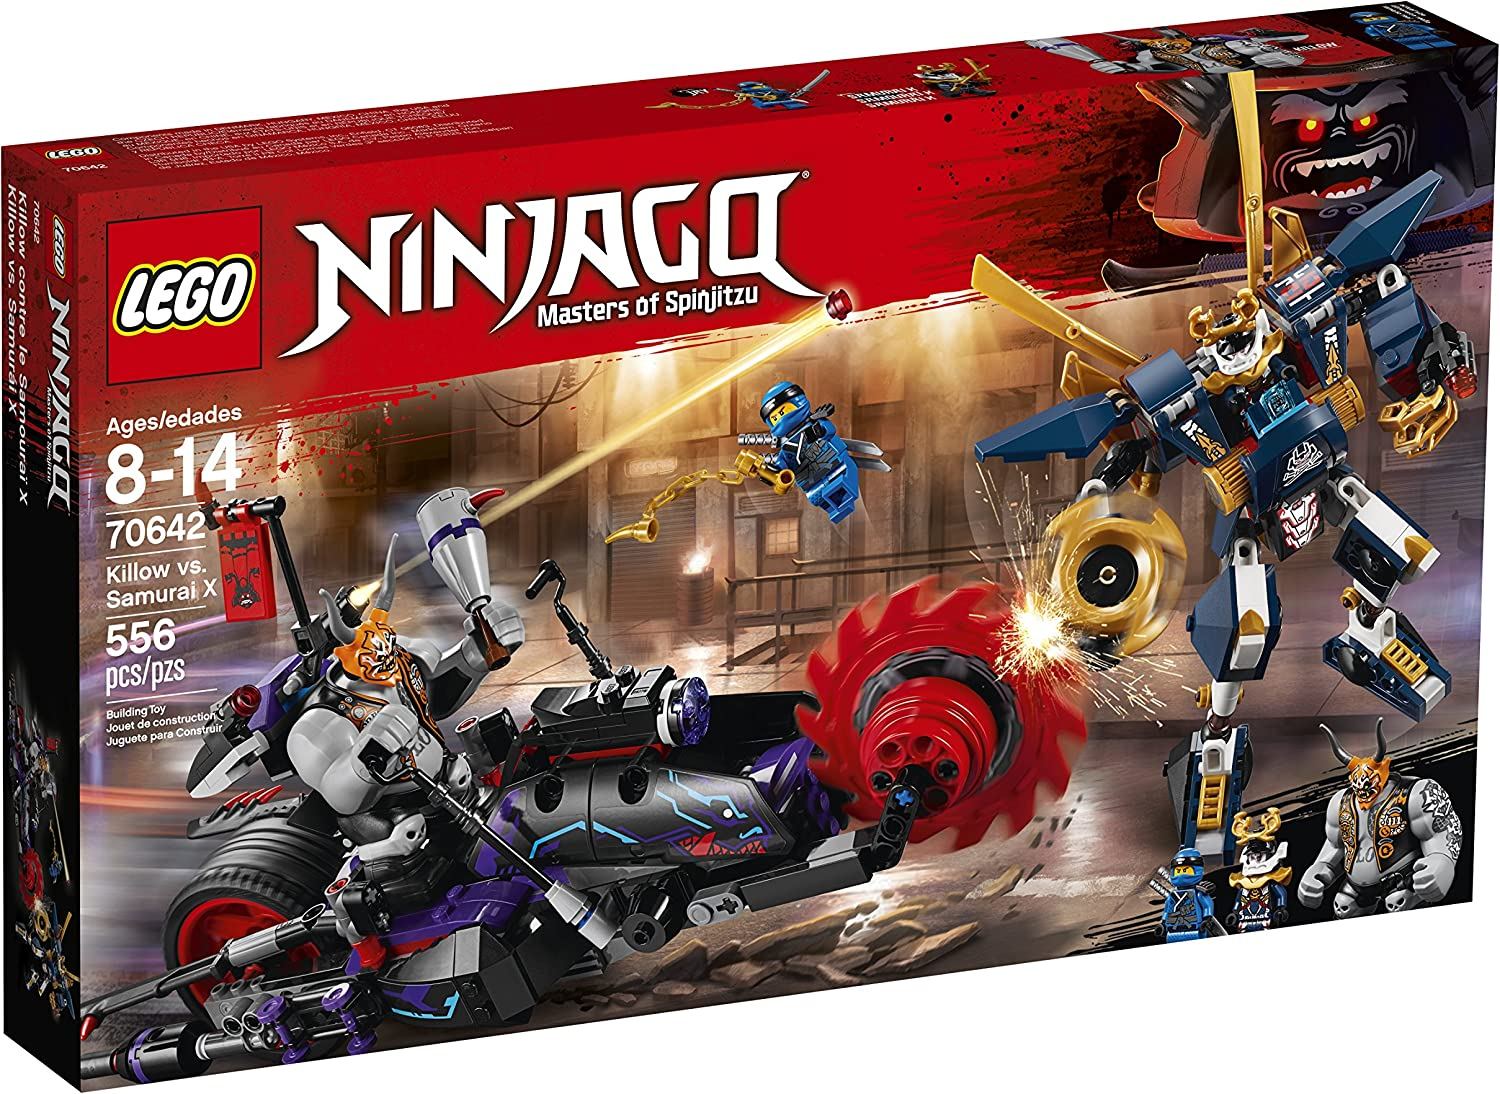 LEGO NINJAGO Killow vs. Samurai X 70642 Building Kit (556 Piece)